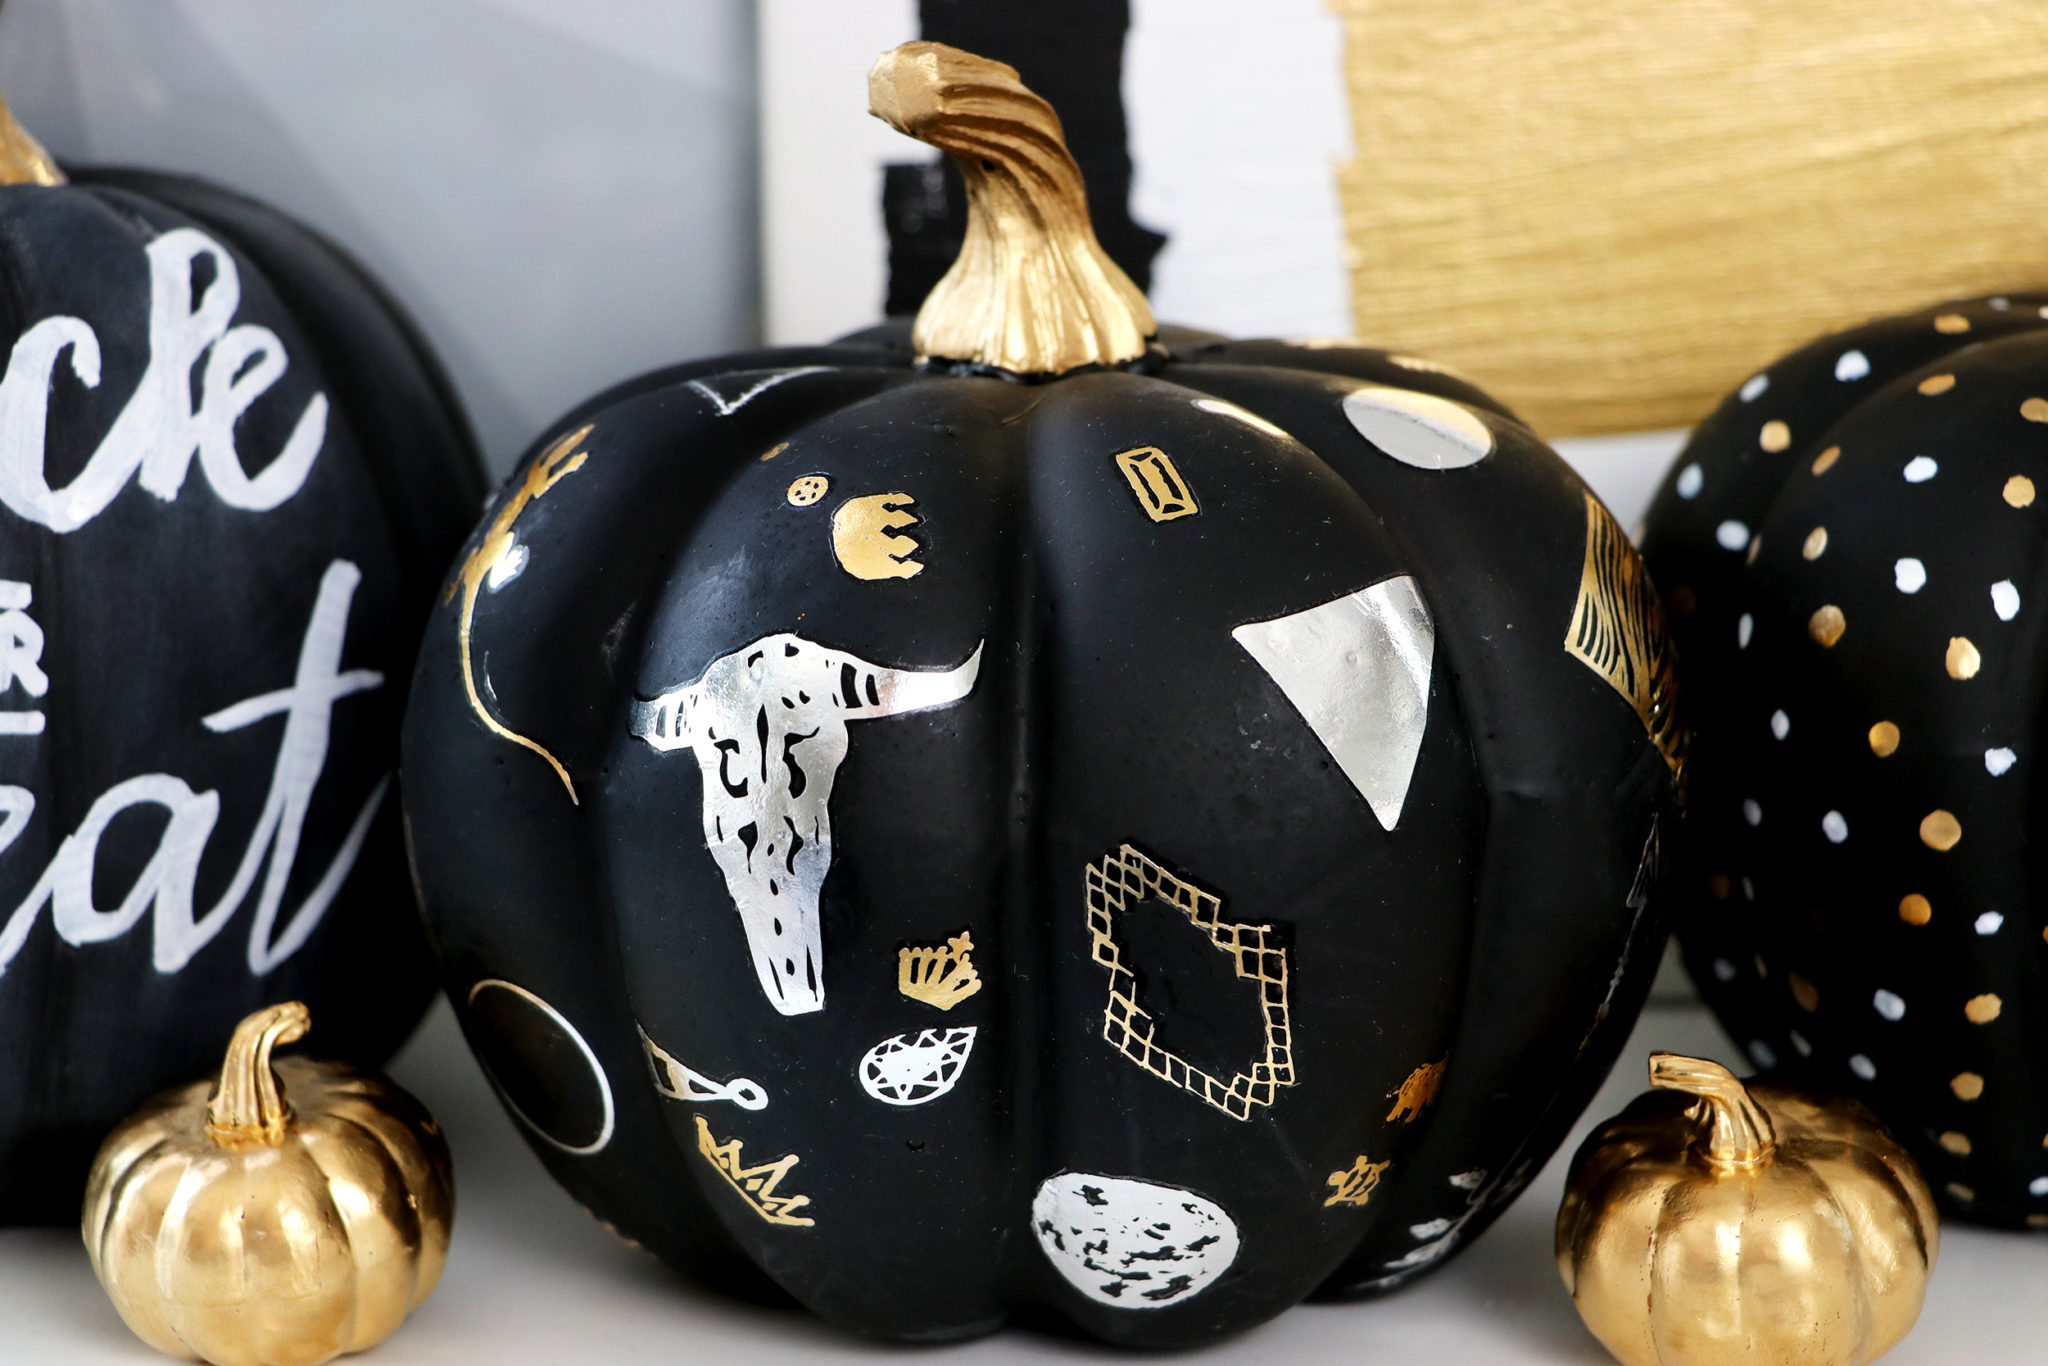 And then I think this one is my favorite. To get these detailed metallic  images onto the pumpkin, all you have to do is use temporary tattoos!